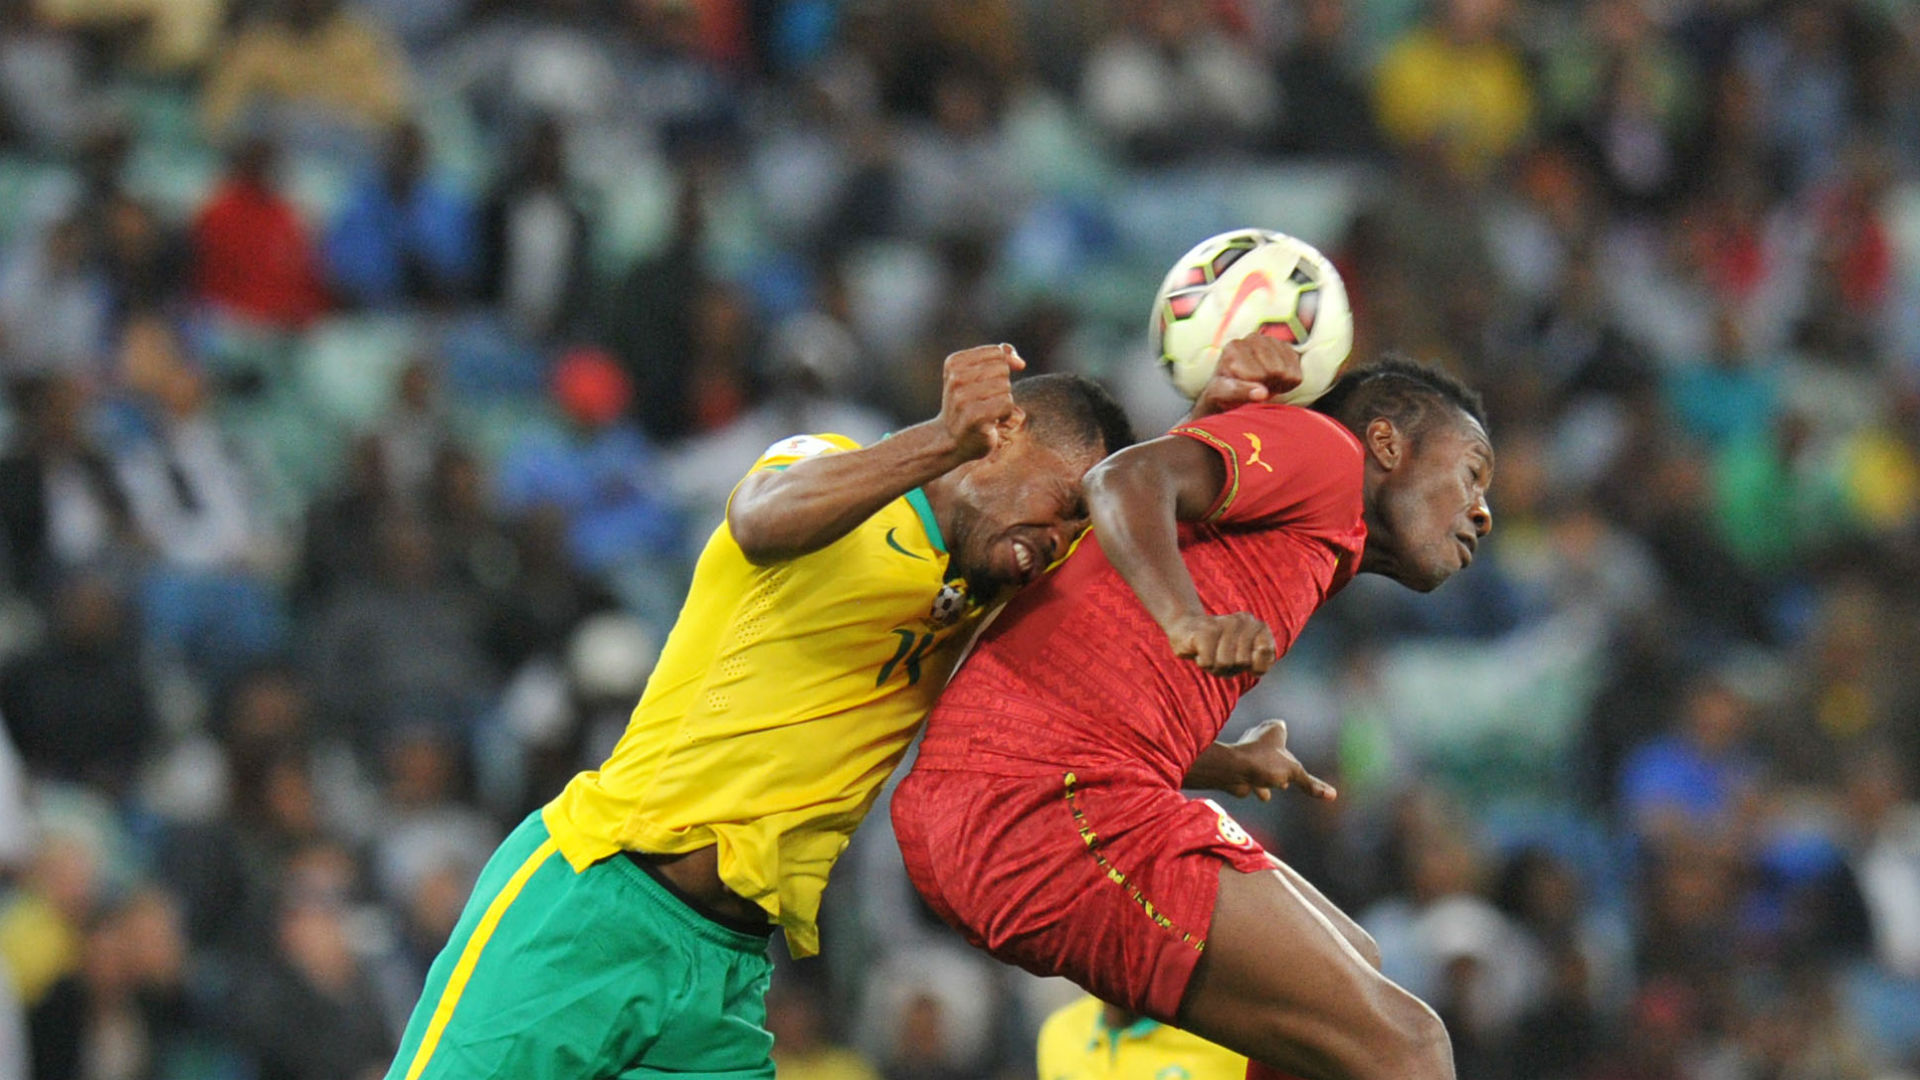 Afcon 2021 Qualifiers: Ghana vs South Africa - Key players to watch